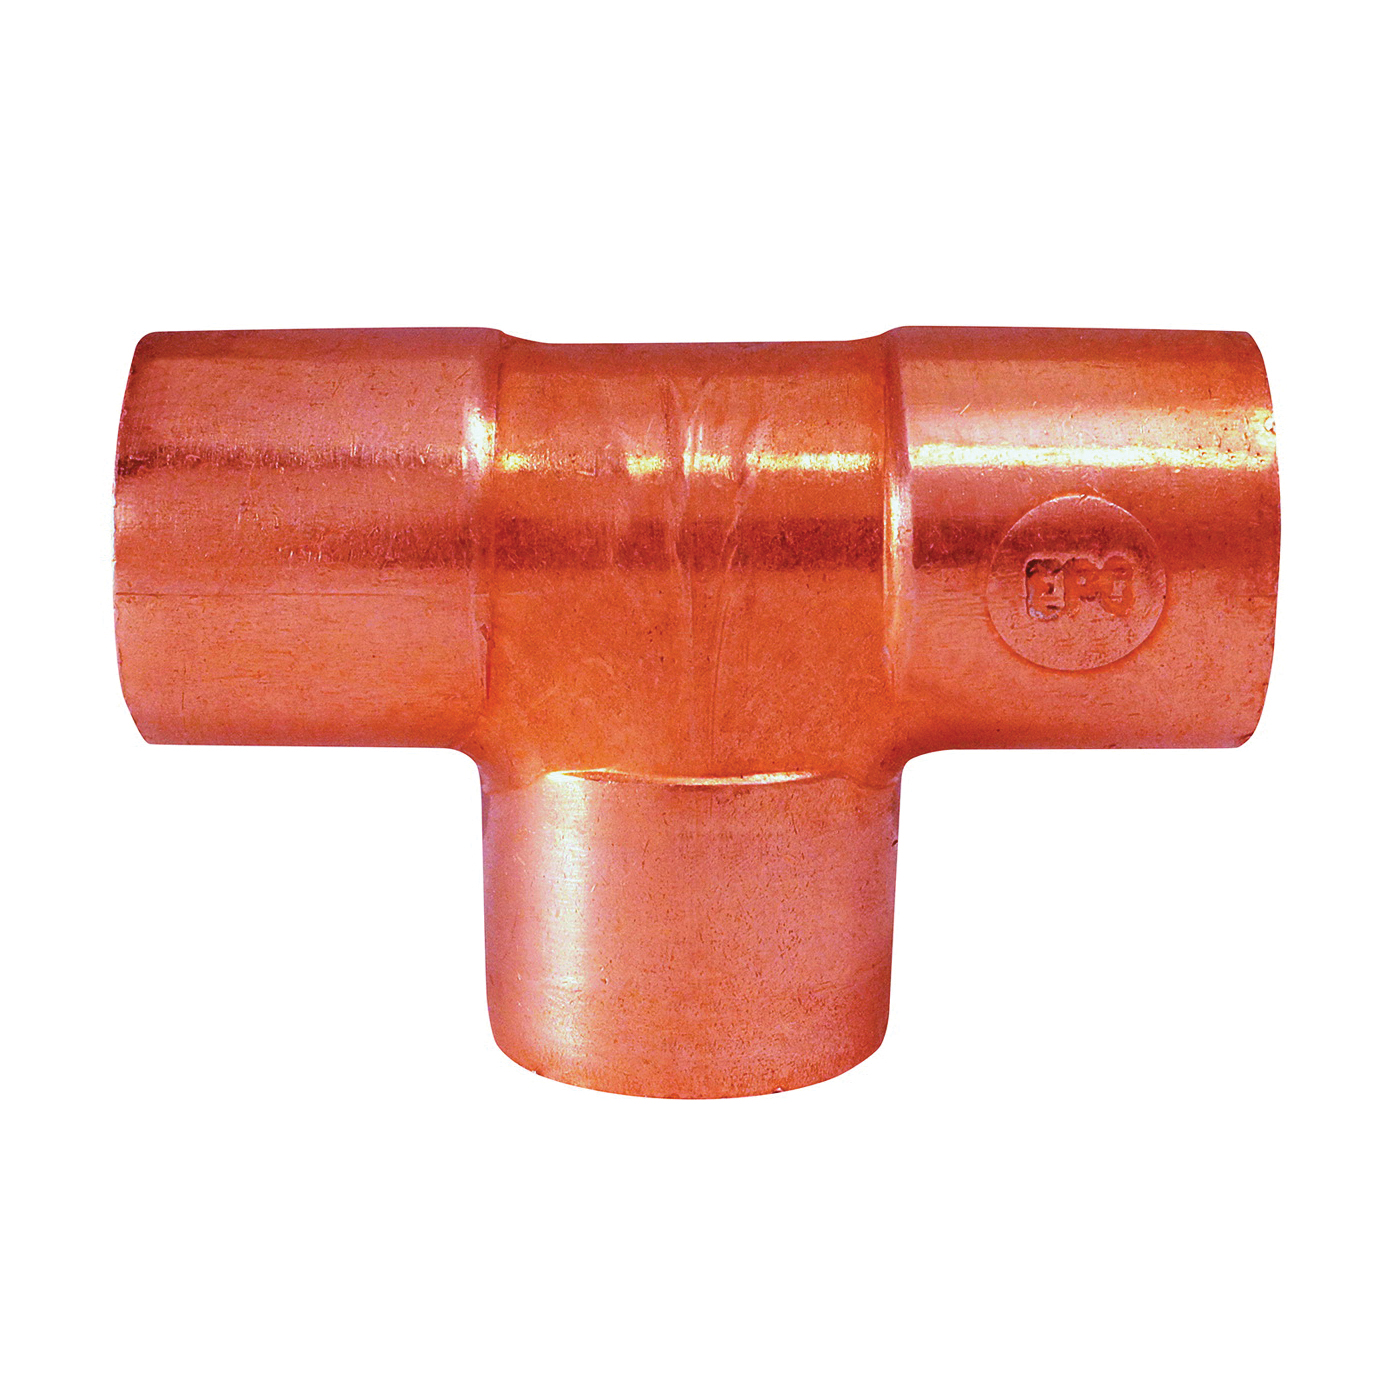 Picture of EPC 111 32640 Pipe Tee, 1/4 in, Sweat, Copper